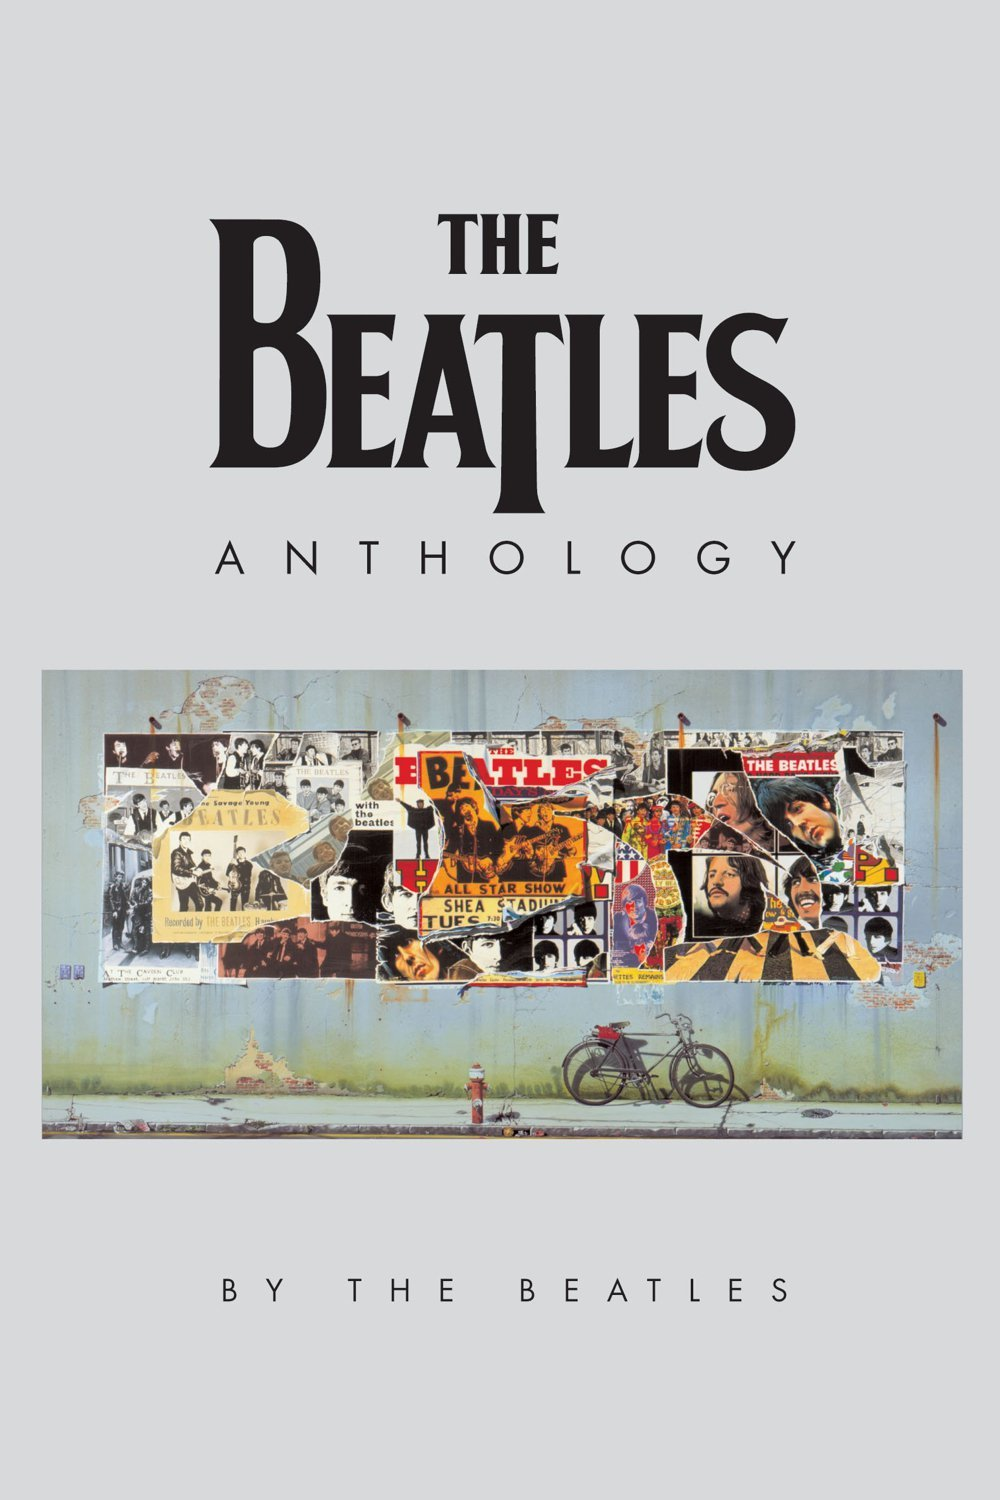 The beatles anthology revisited